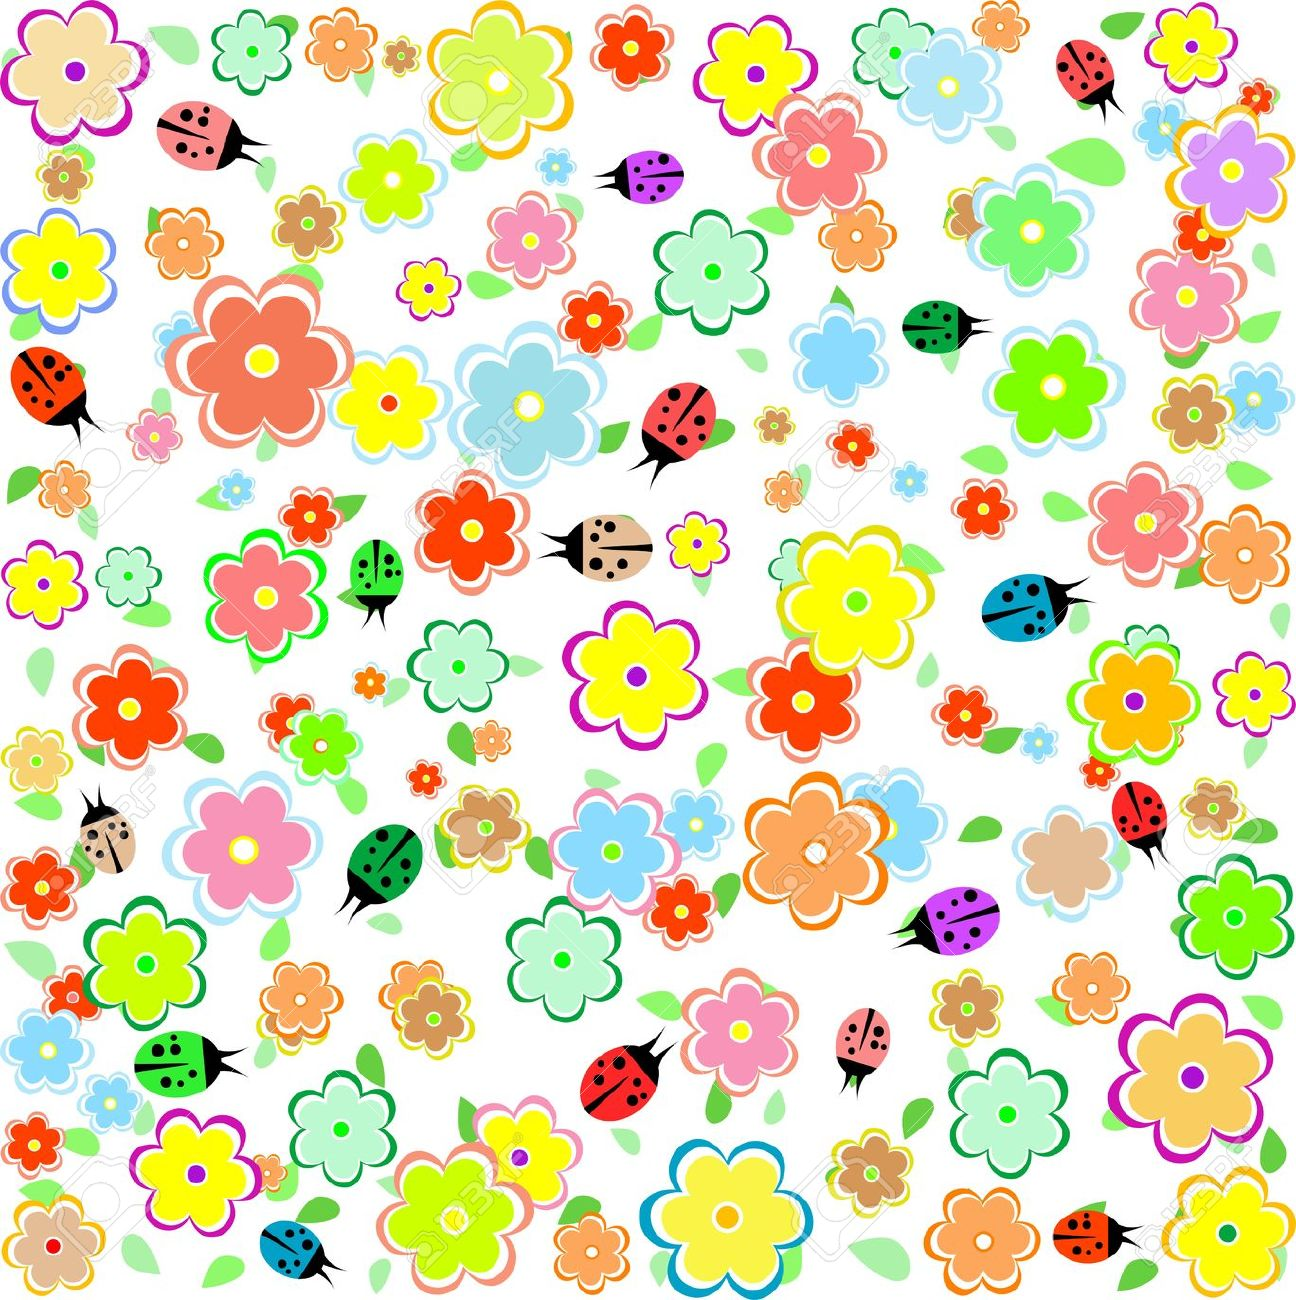 Small cartoon flowers clip transparent Spring Background With Small Flowers And Ladybugs Royalty Free ... clip transparent